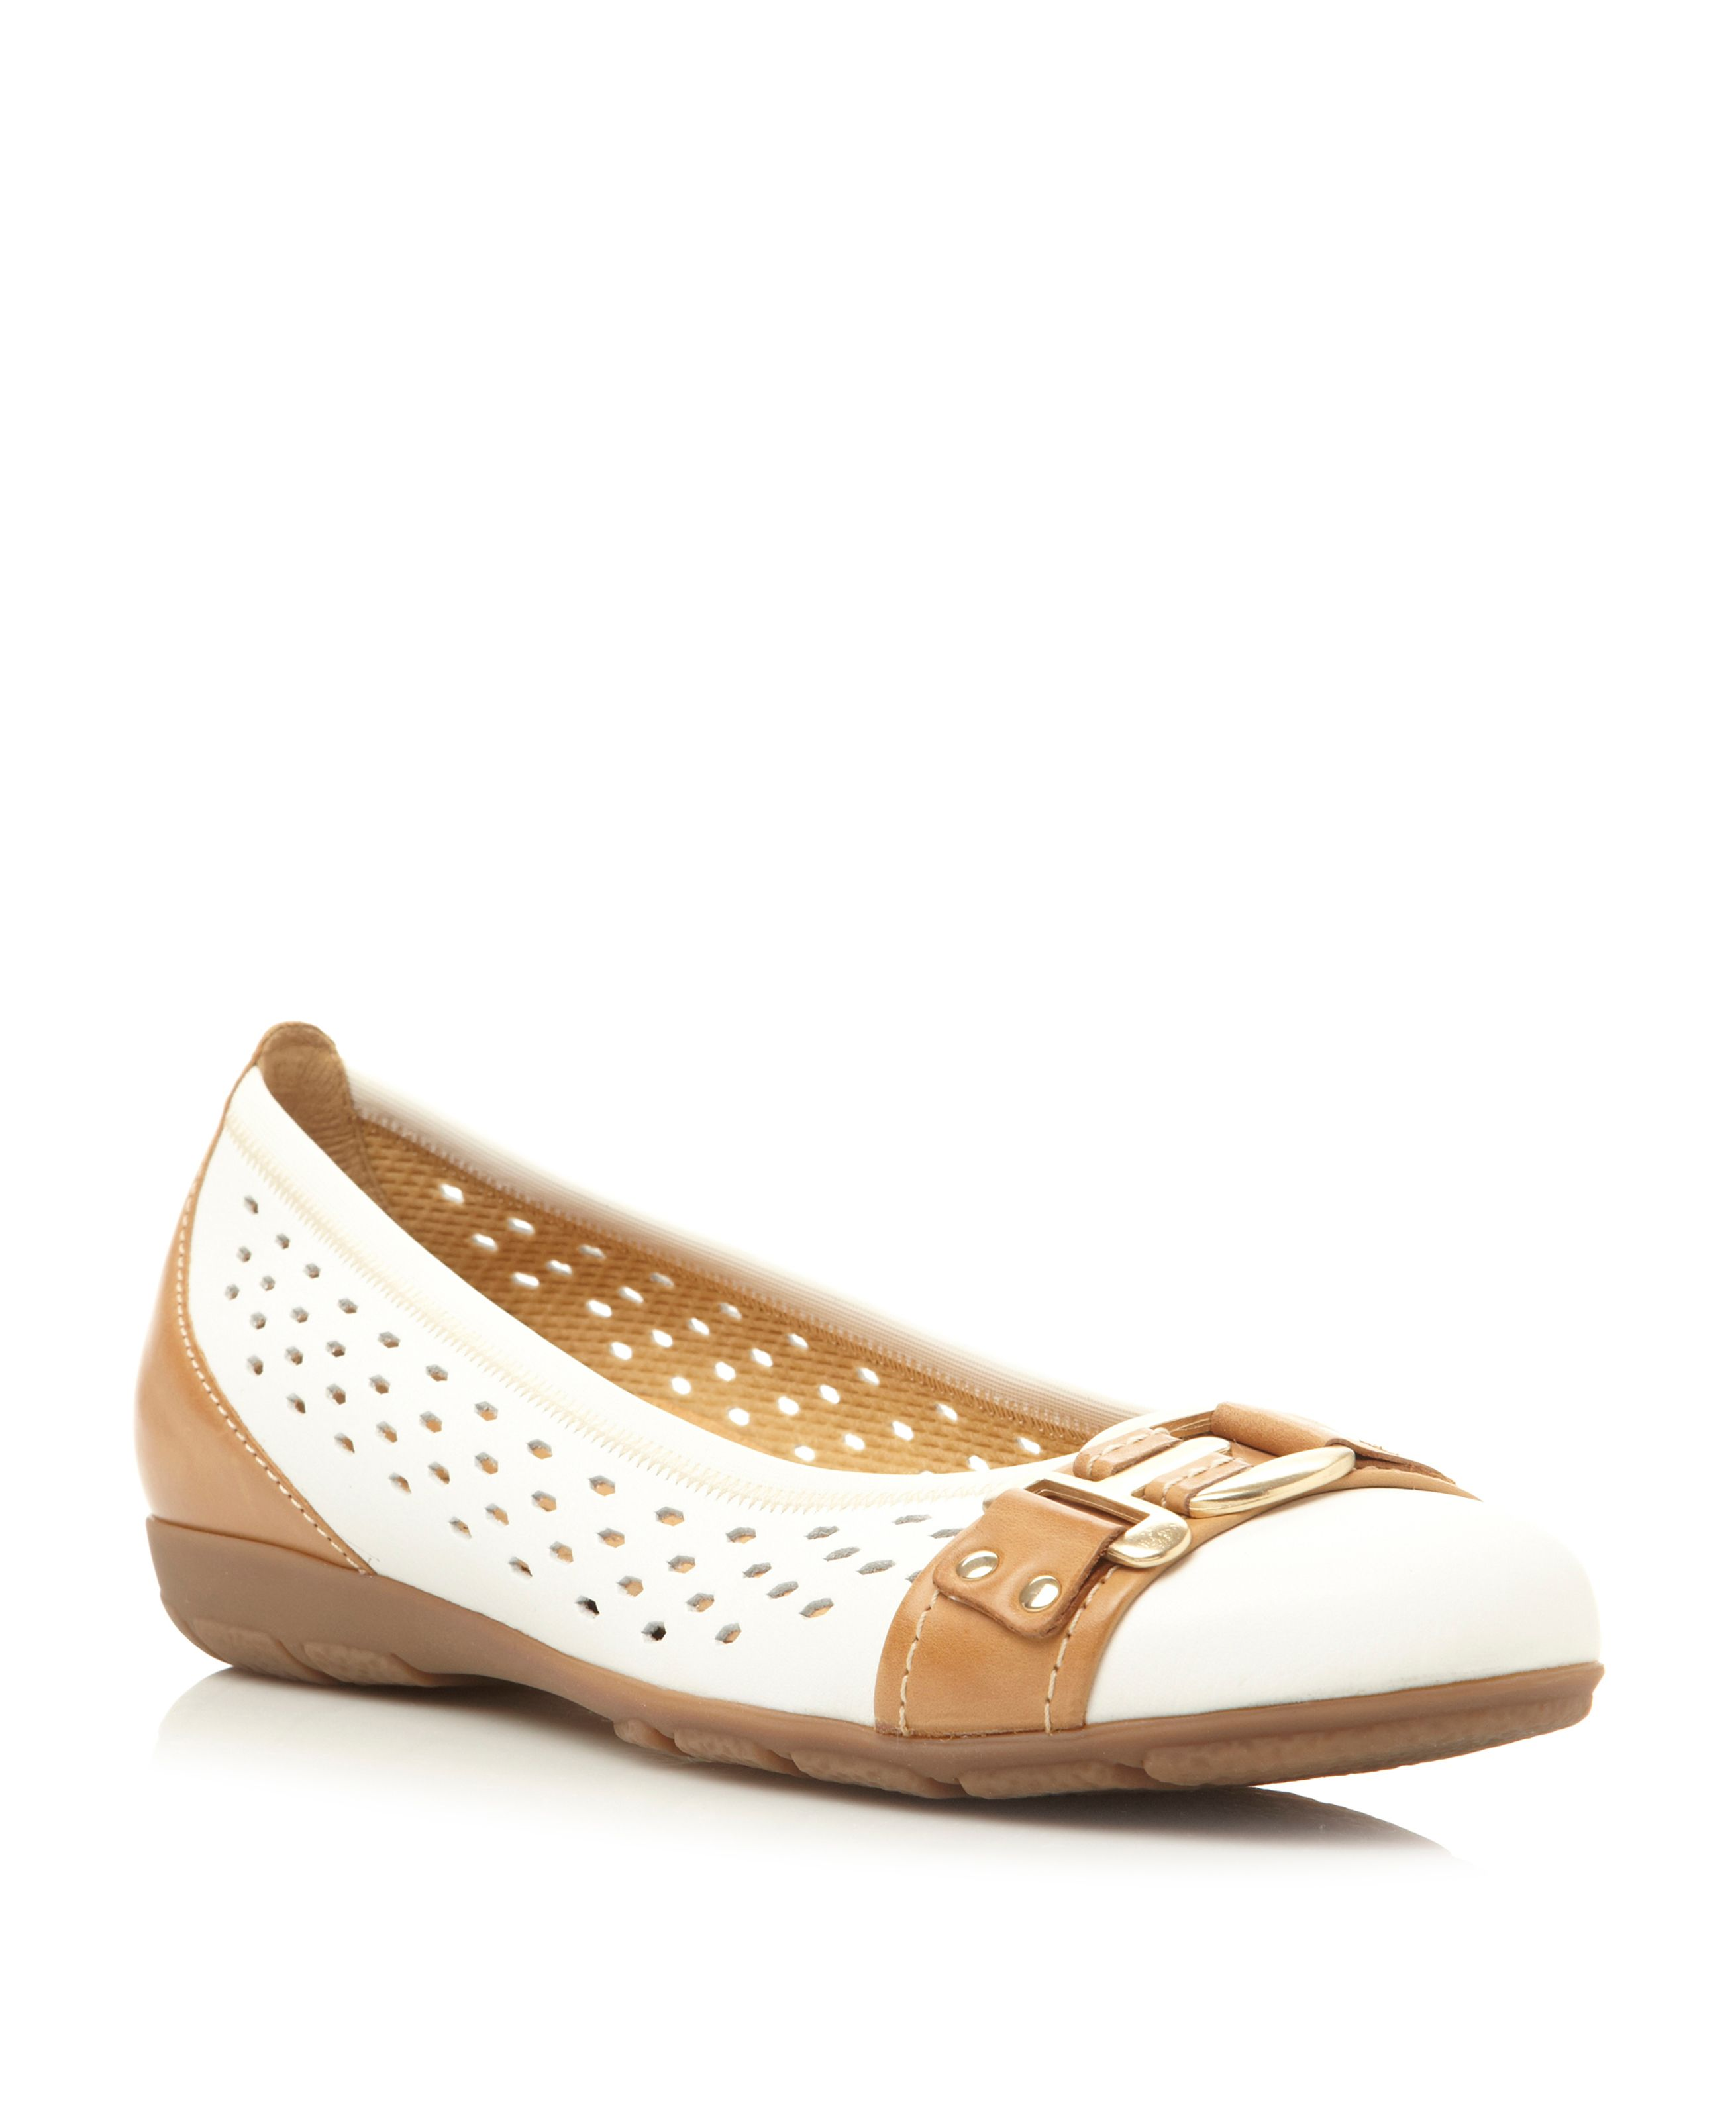 Foyle leather round toe ballerina shoes